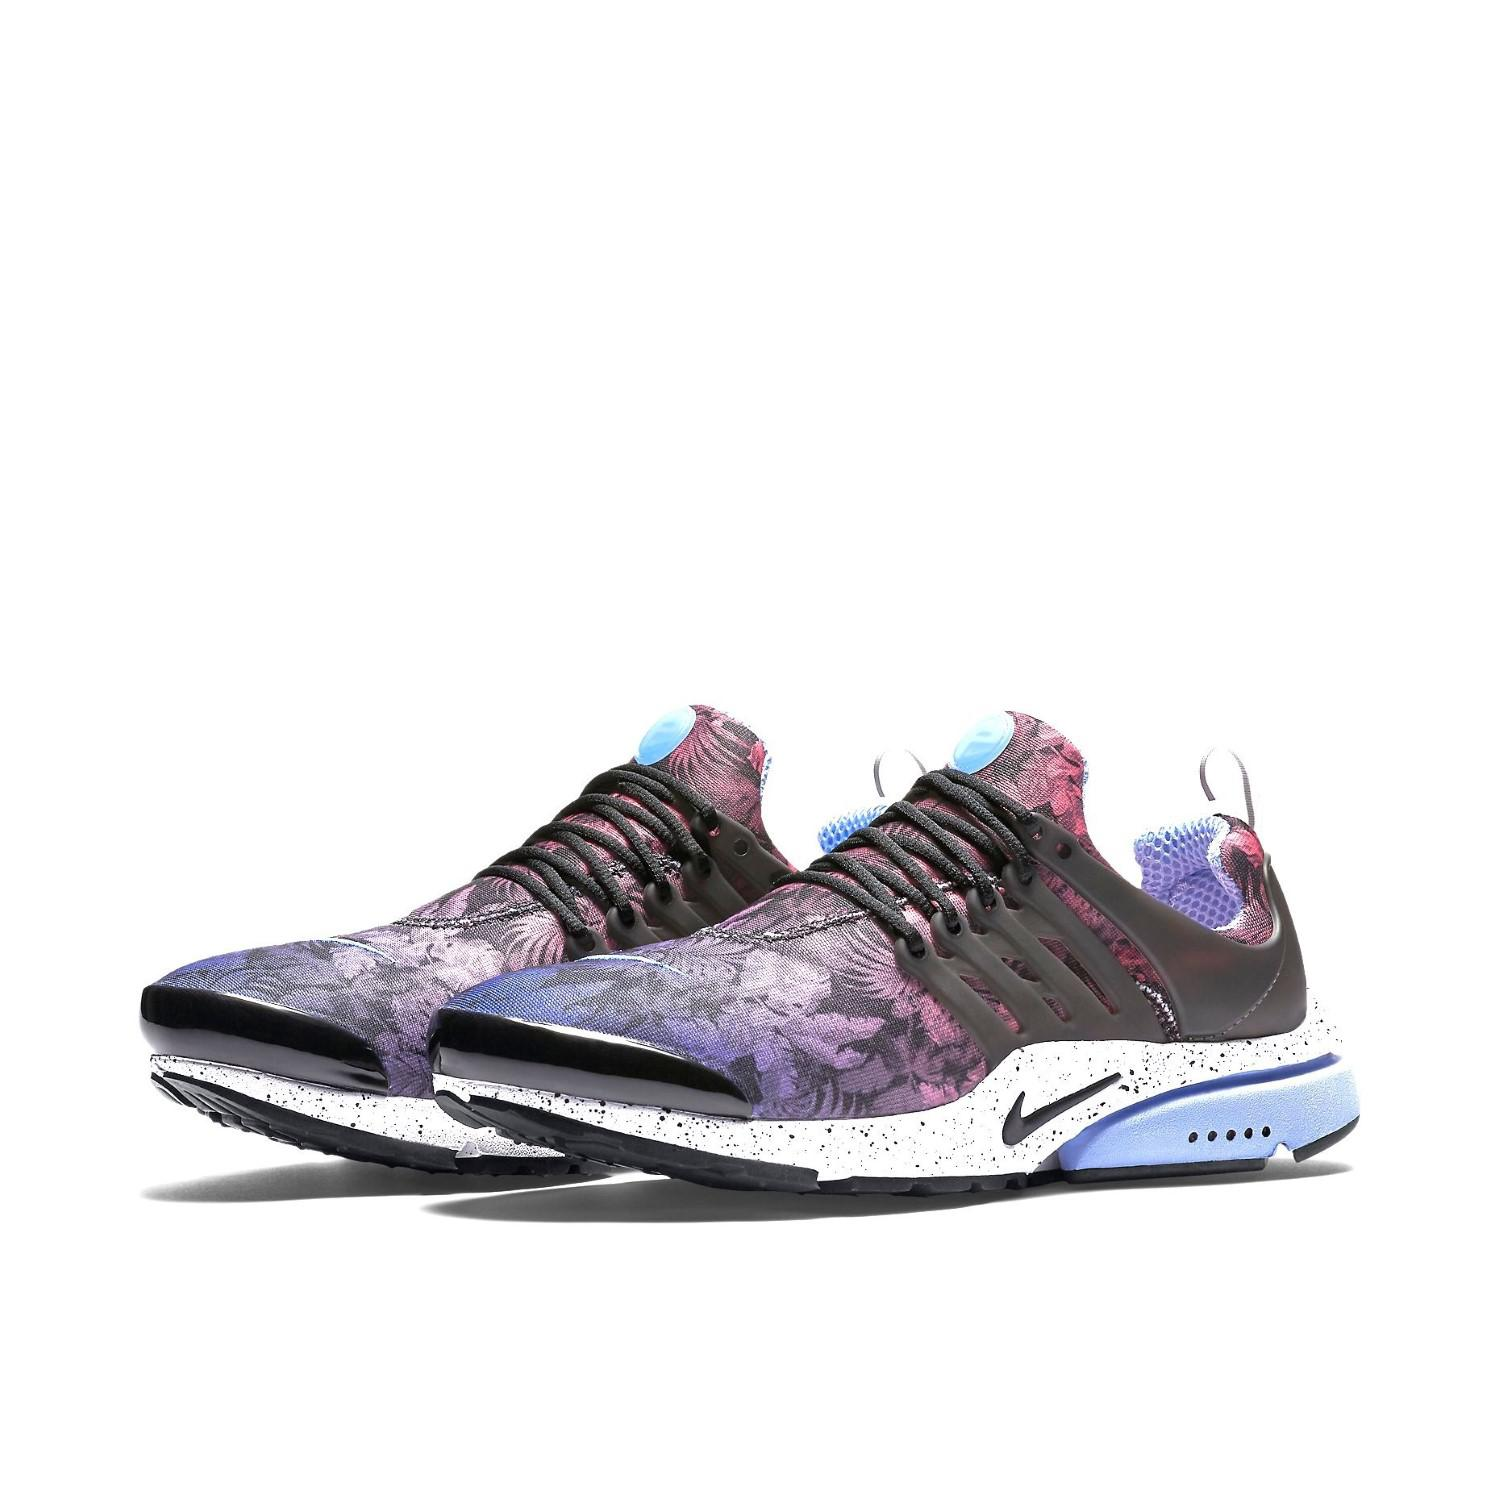 3dfbeecf3402 ... where to buy lyst nike mens air presto gpx aluminum black white dusty  grey b1c68 5f64a ...